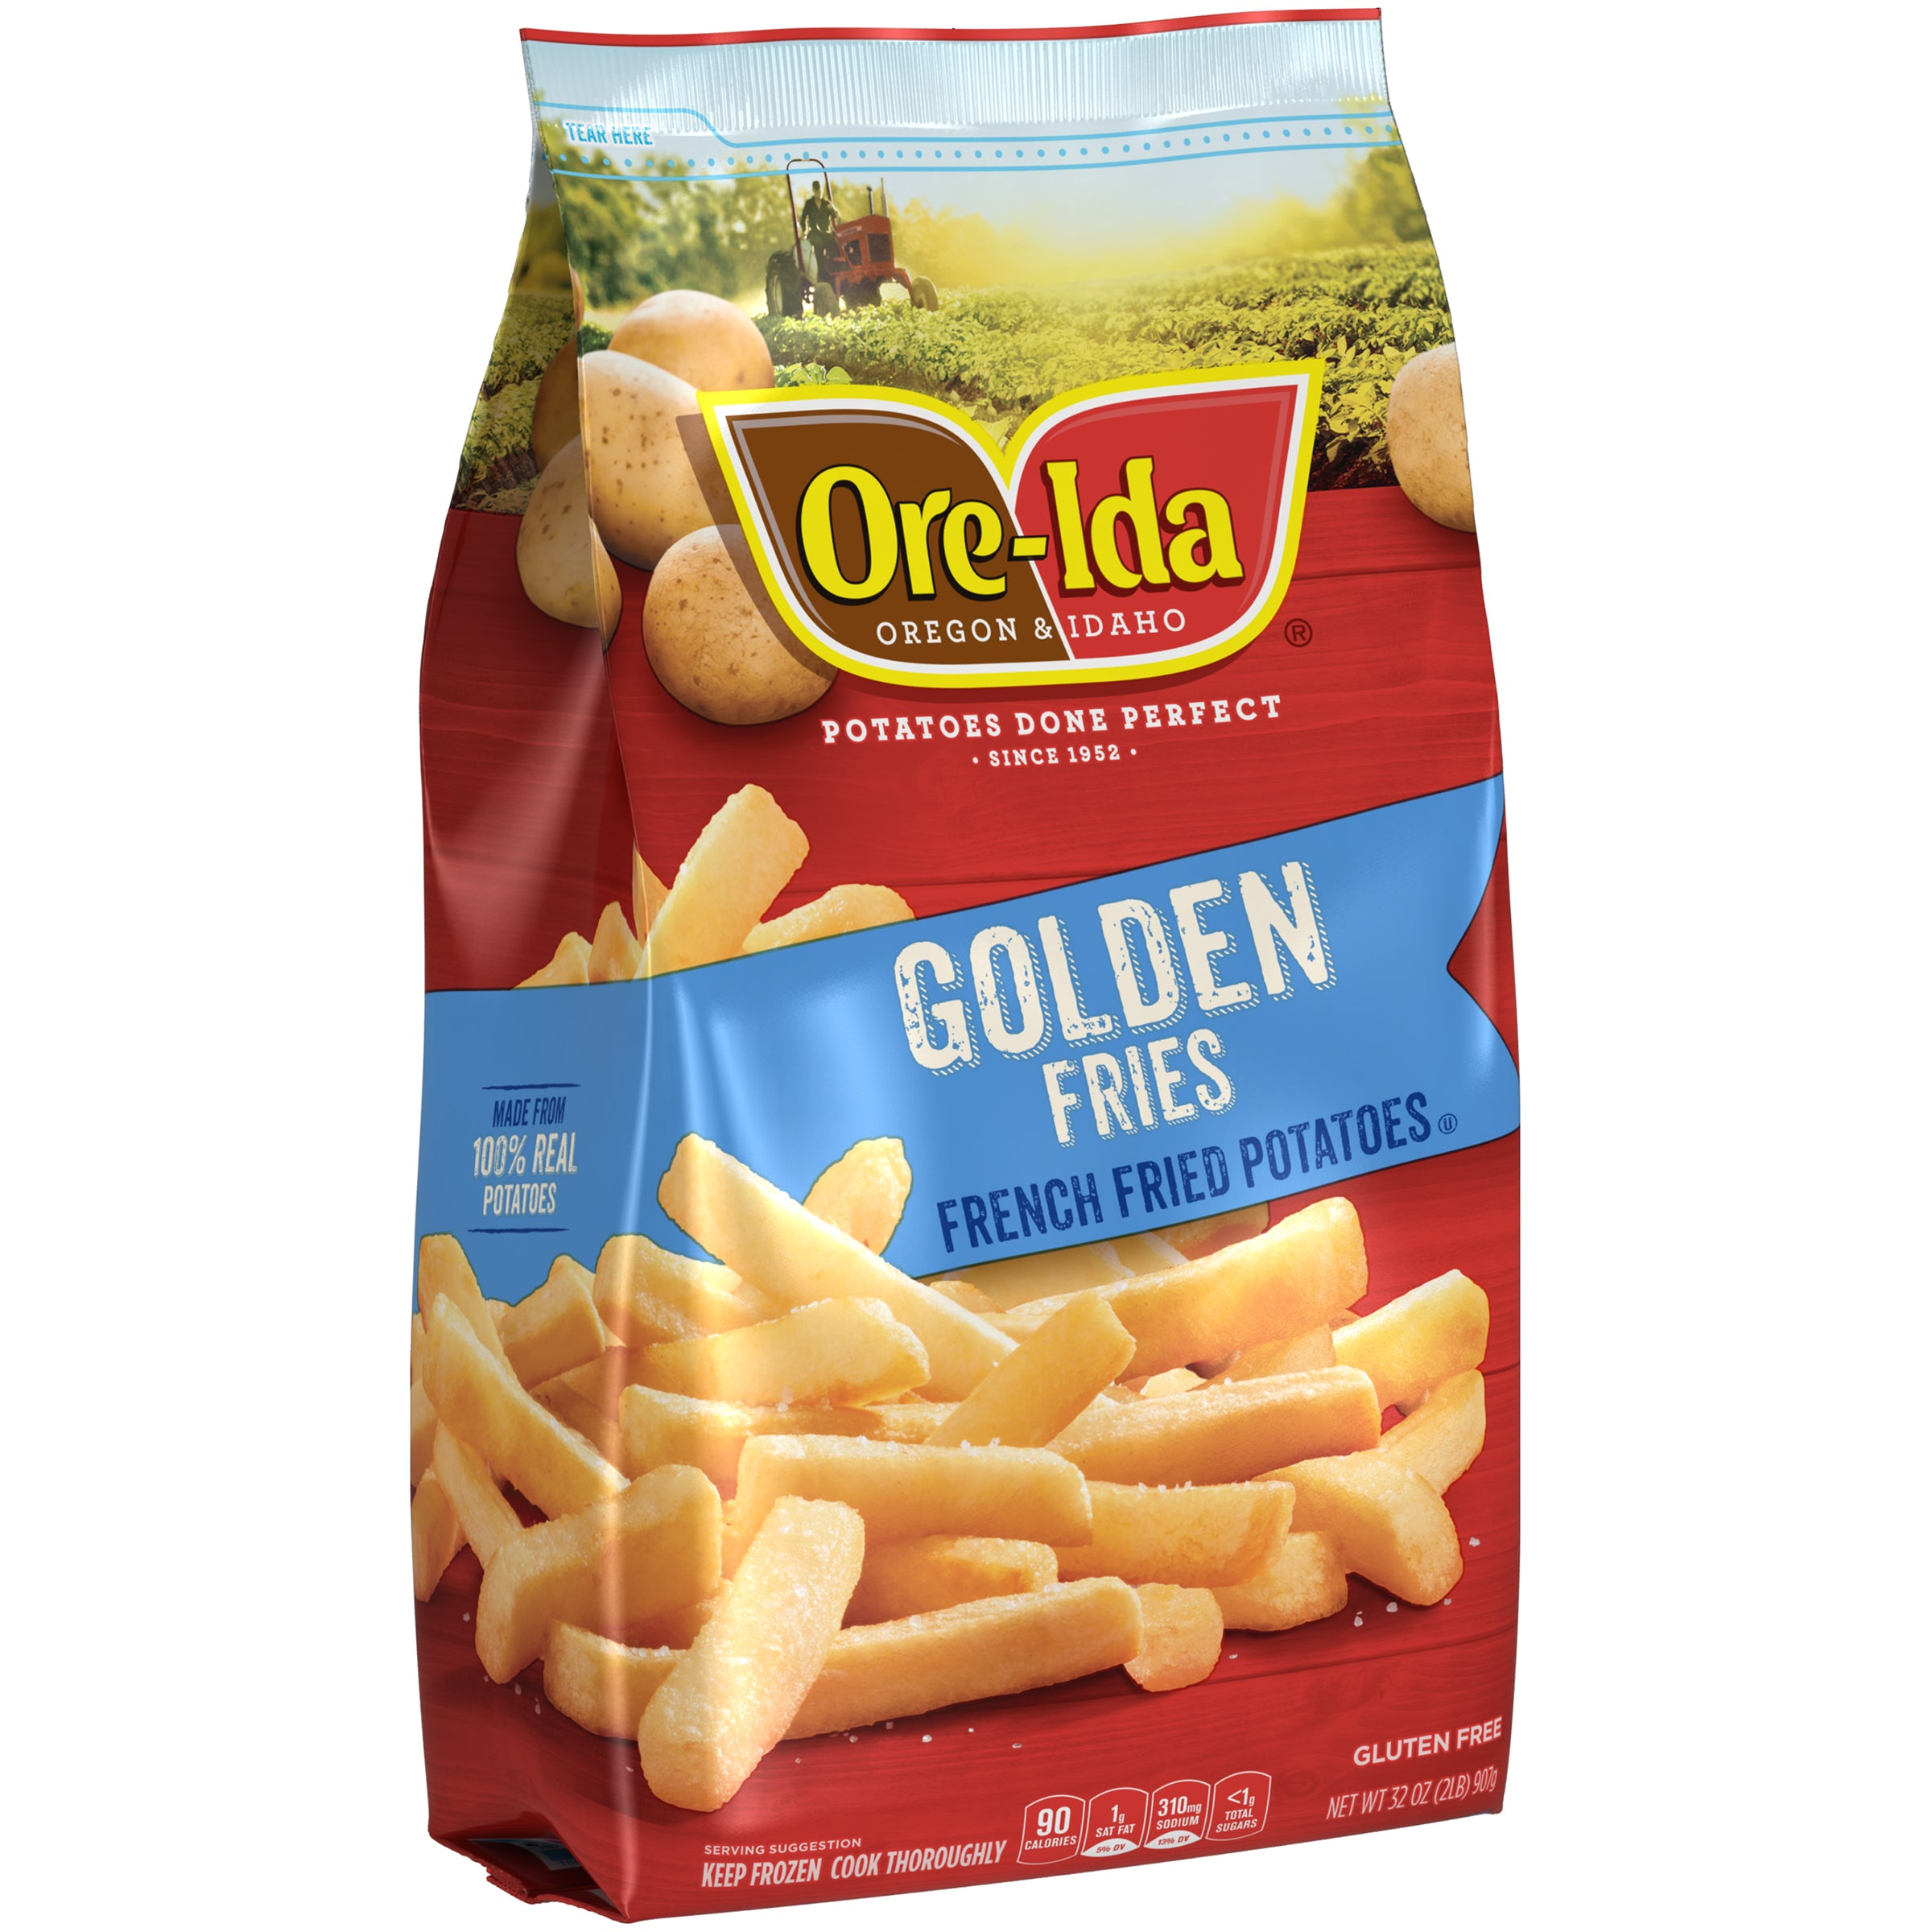 ORE--IDA GOLDEN FRENCH FRIES 32 OZ